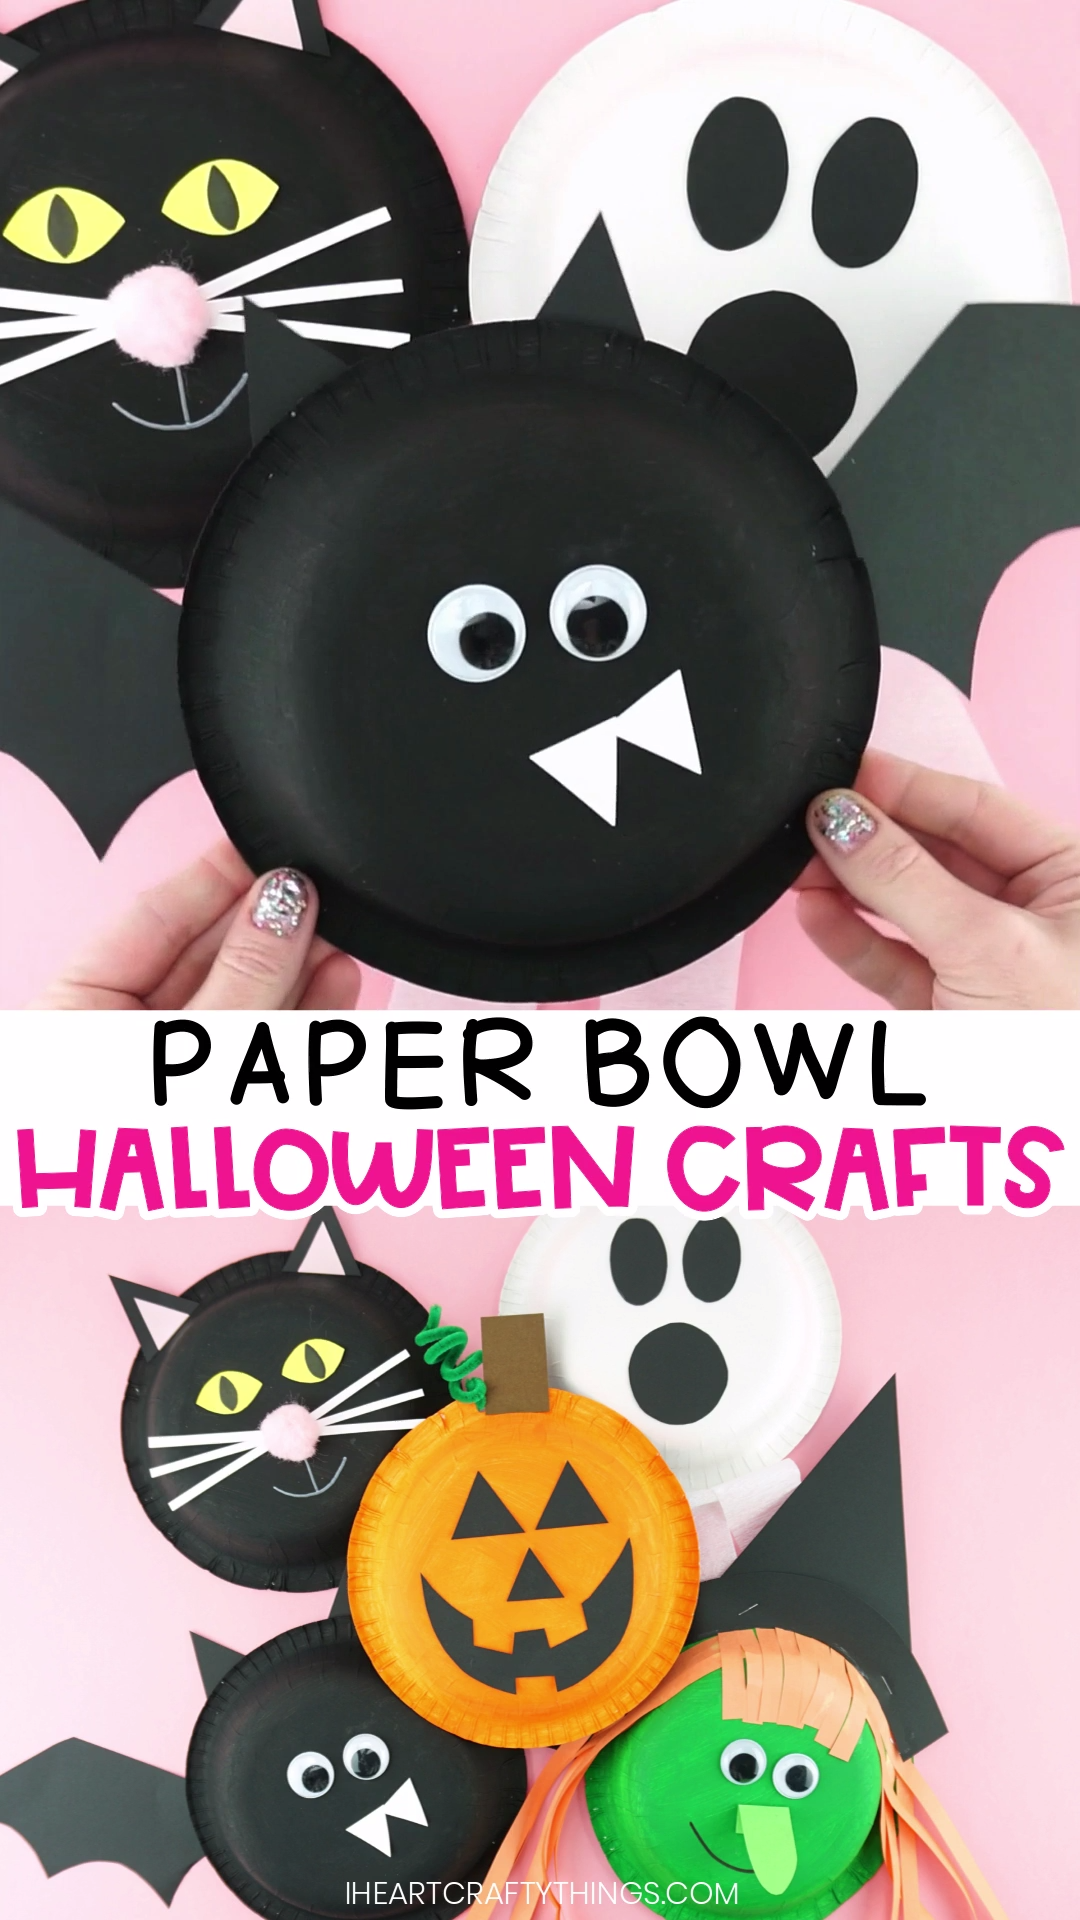 Paper Bowl Halloween Crafts for Kids #halloweencraftsforkids